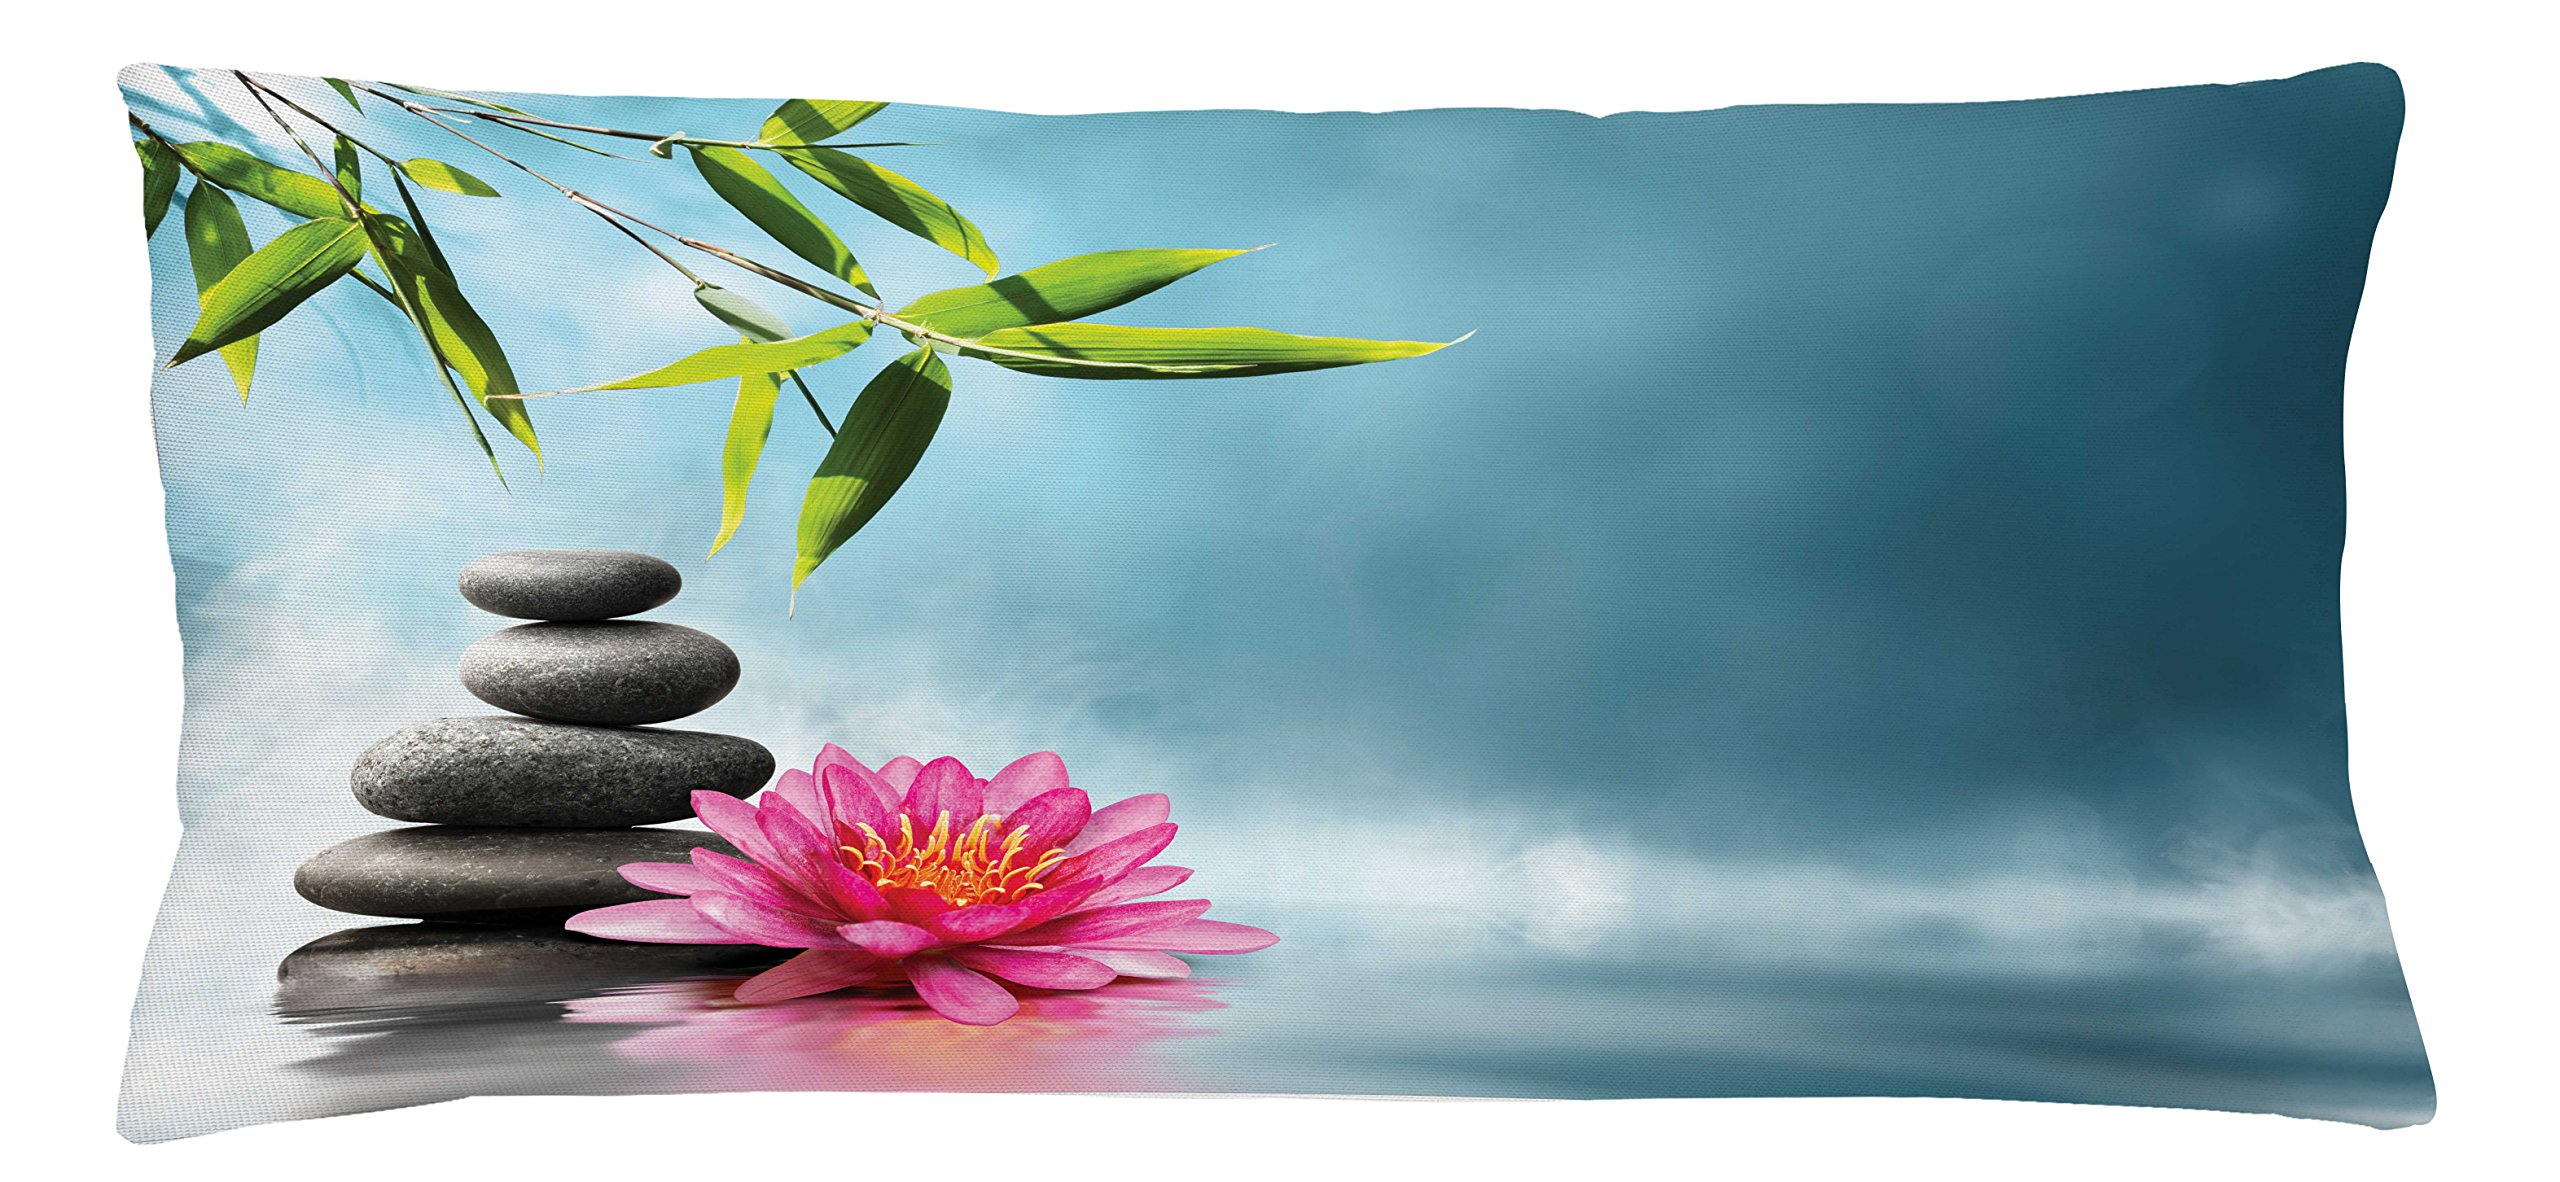 Ambesonne Spa Throw Pillow Cushion Cover, Spa Theme with Lily Lotus Flower and Rocks Yoga Style Purifying Your Soul Theme, Decorative Square Accent Pillow Case, 36 X 16 inches, Blue Pink Green